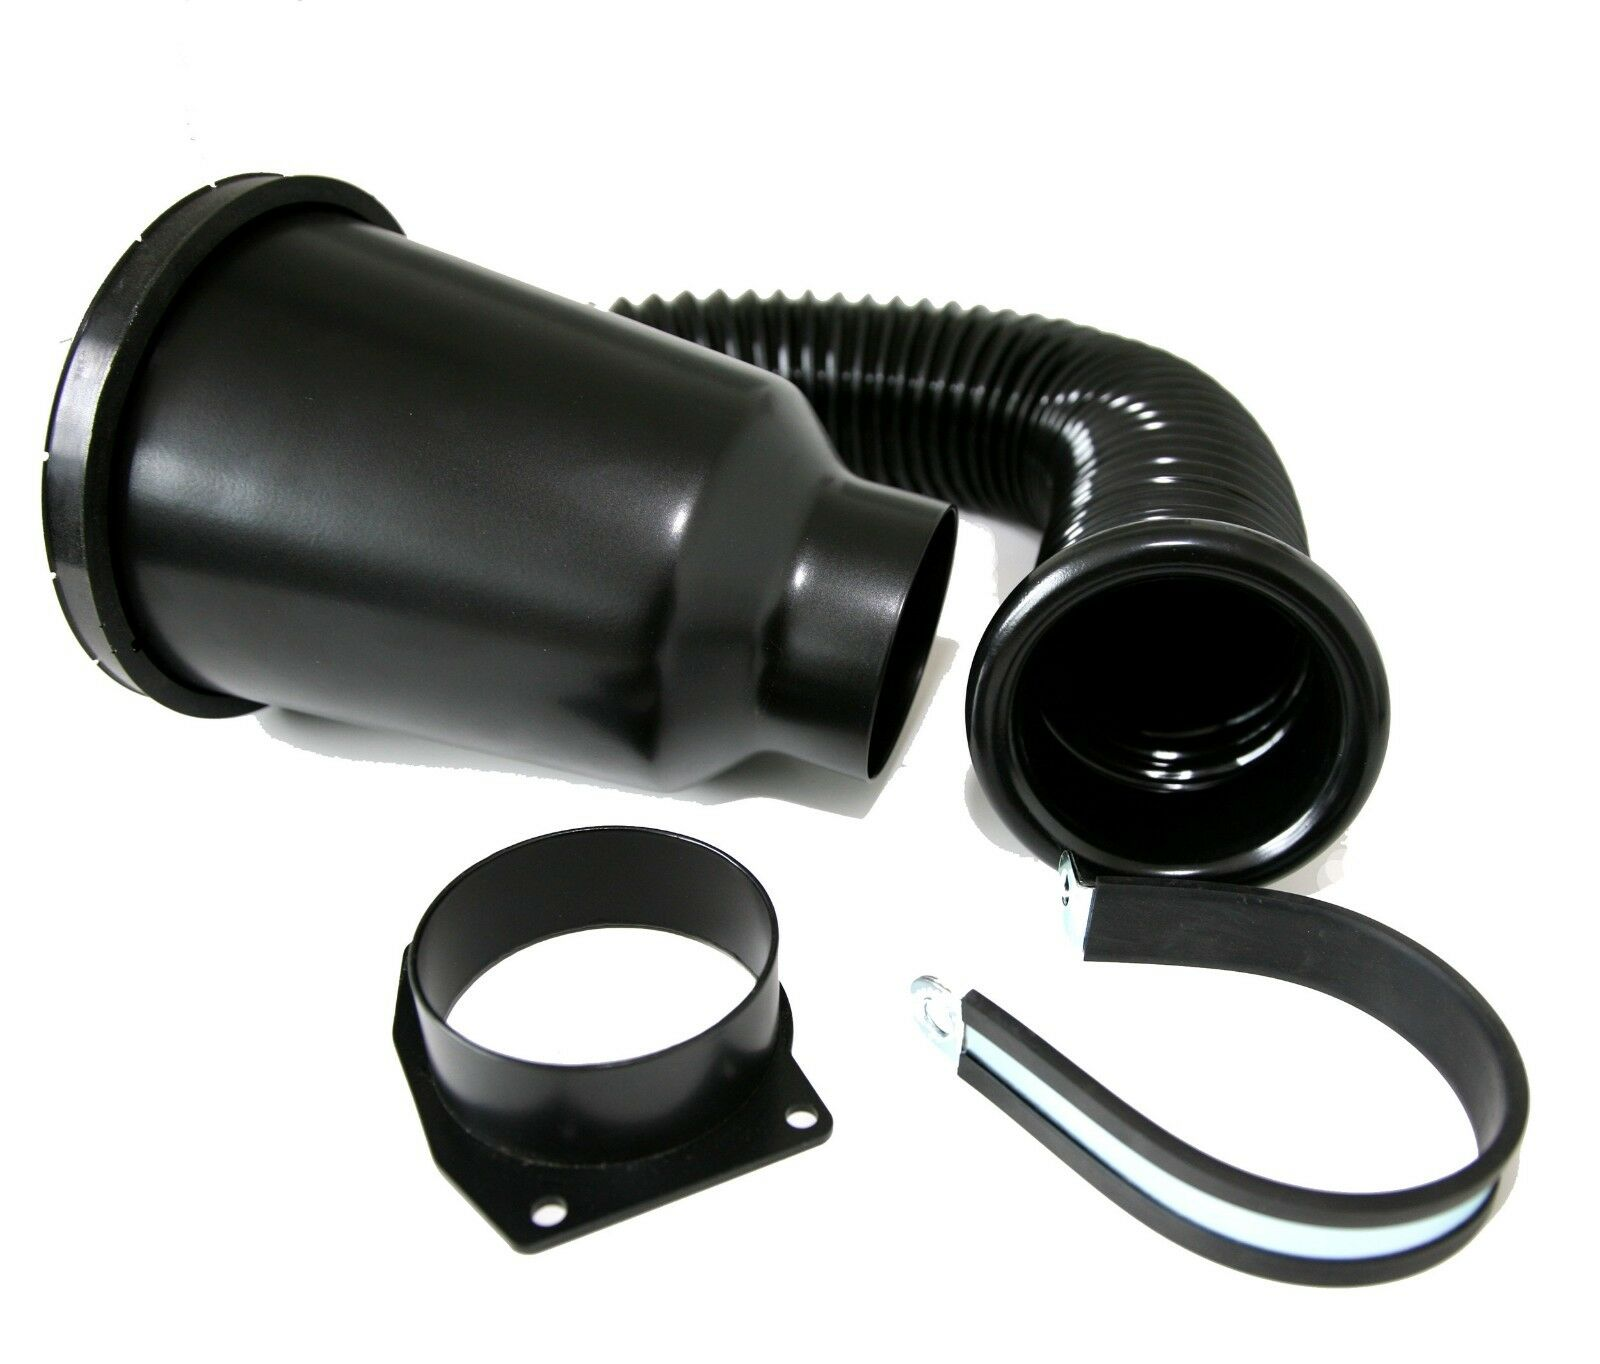 RAMAIR Enclosed Cold Air Induction Kit for Ford Focus Mk1 2.0 16V 1998-04 131Bhp